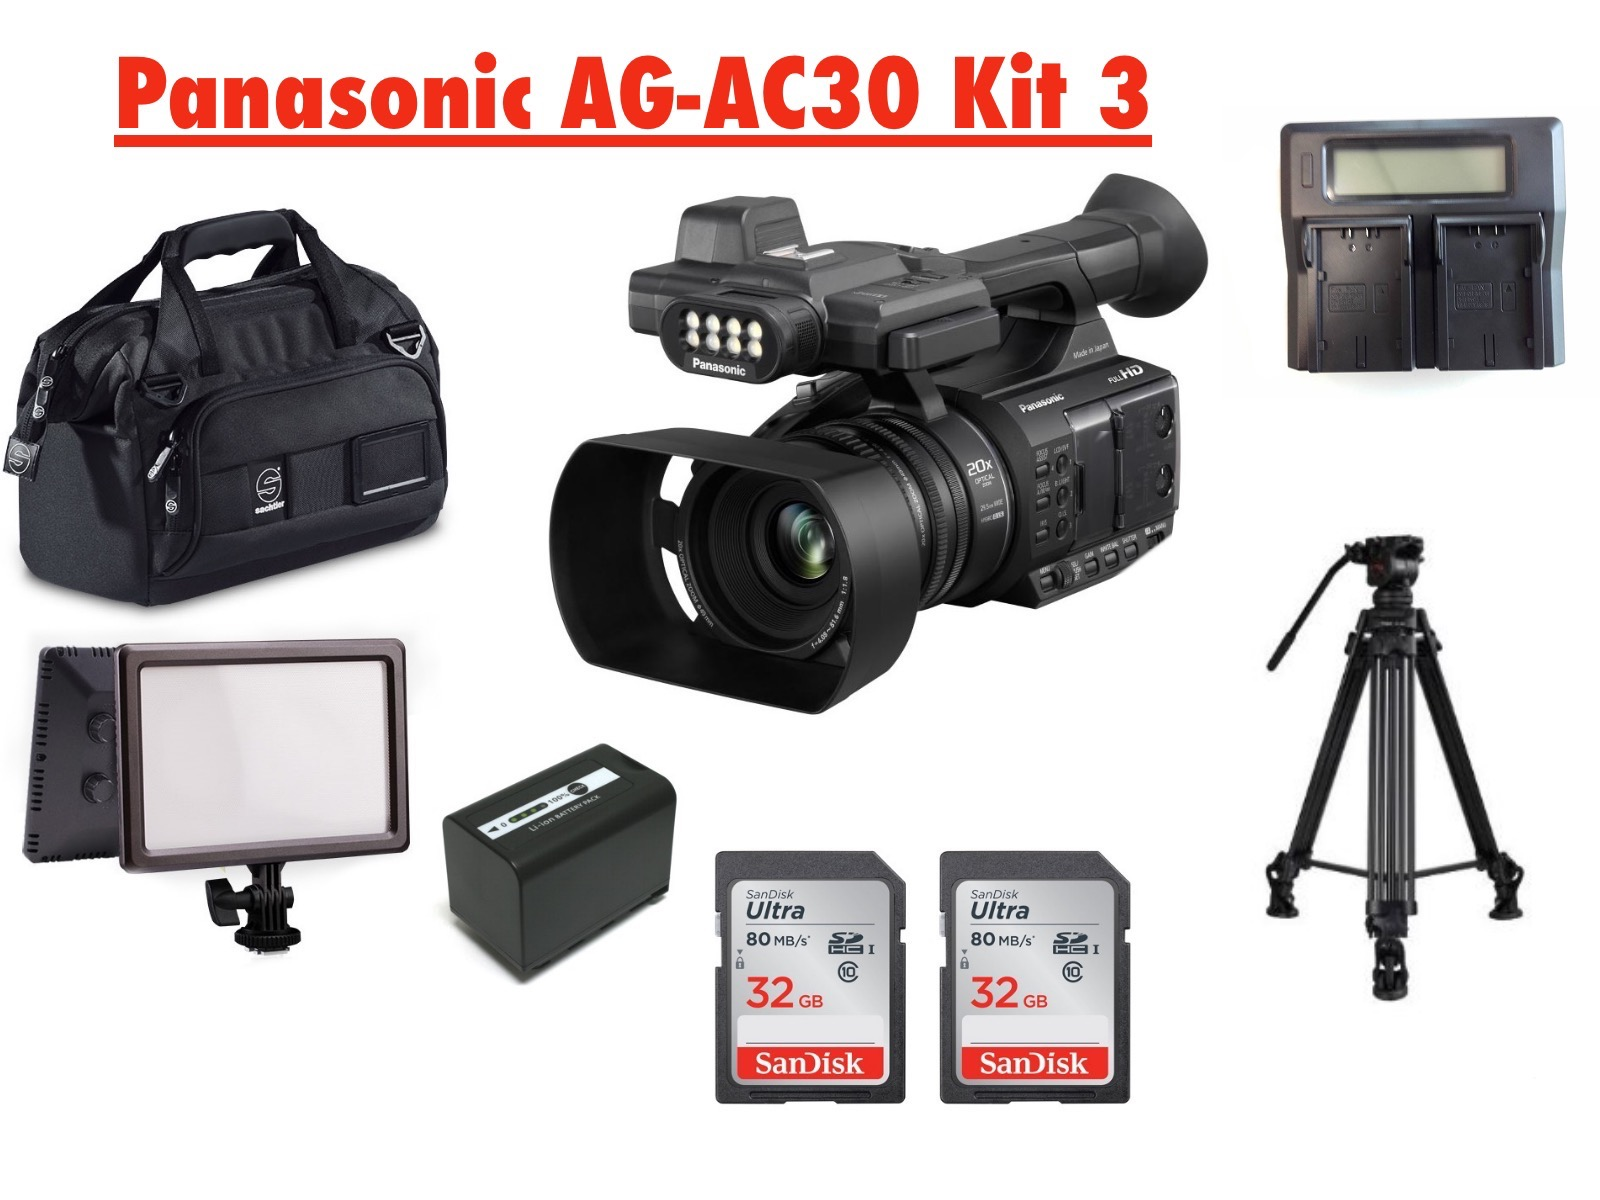 PANASONIC AG-AC30 BROADCAST KIT 3